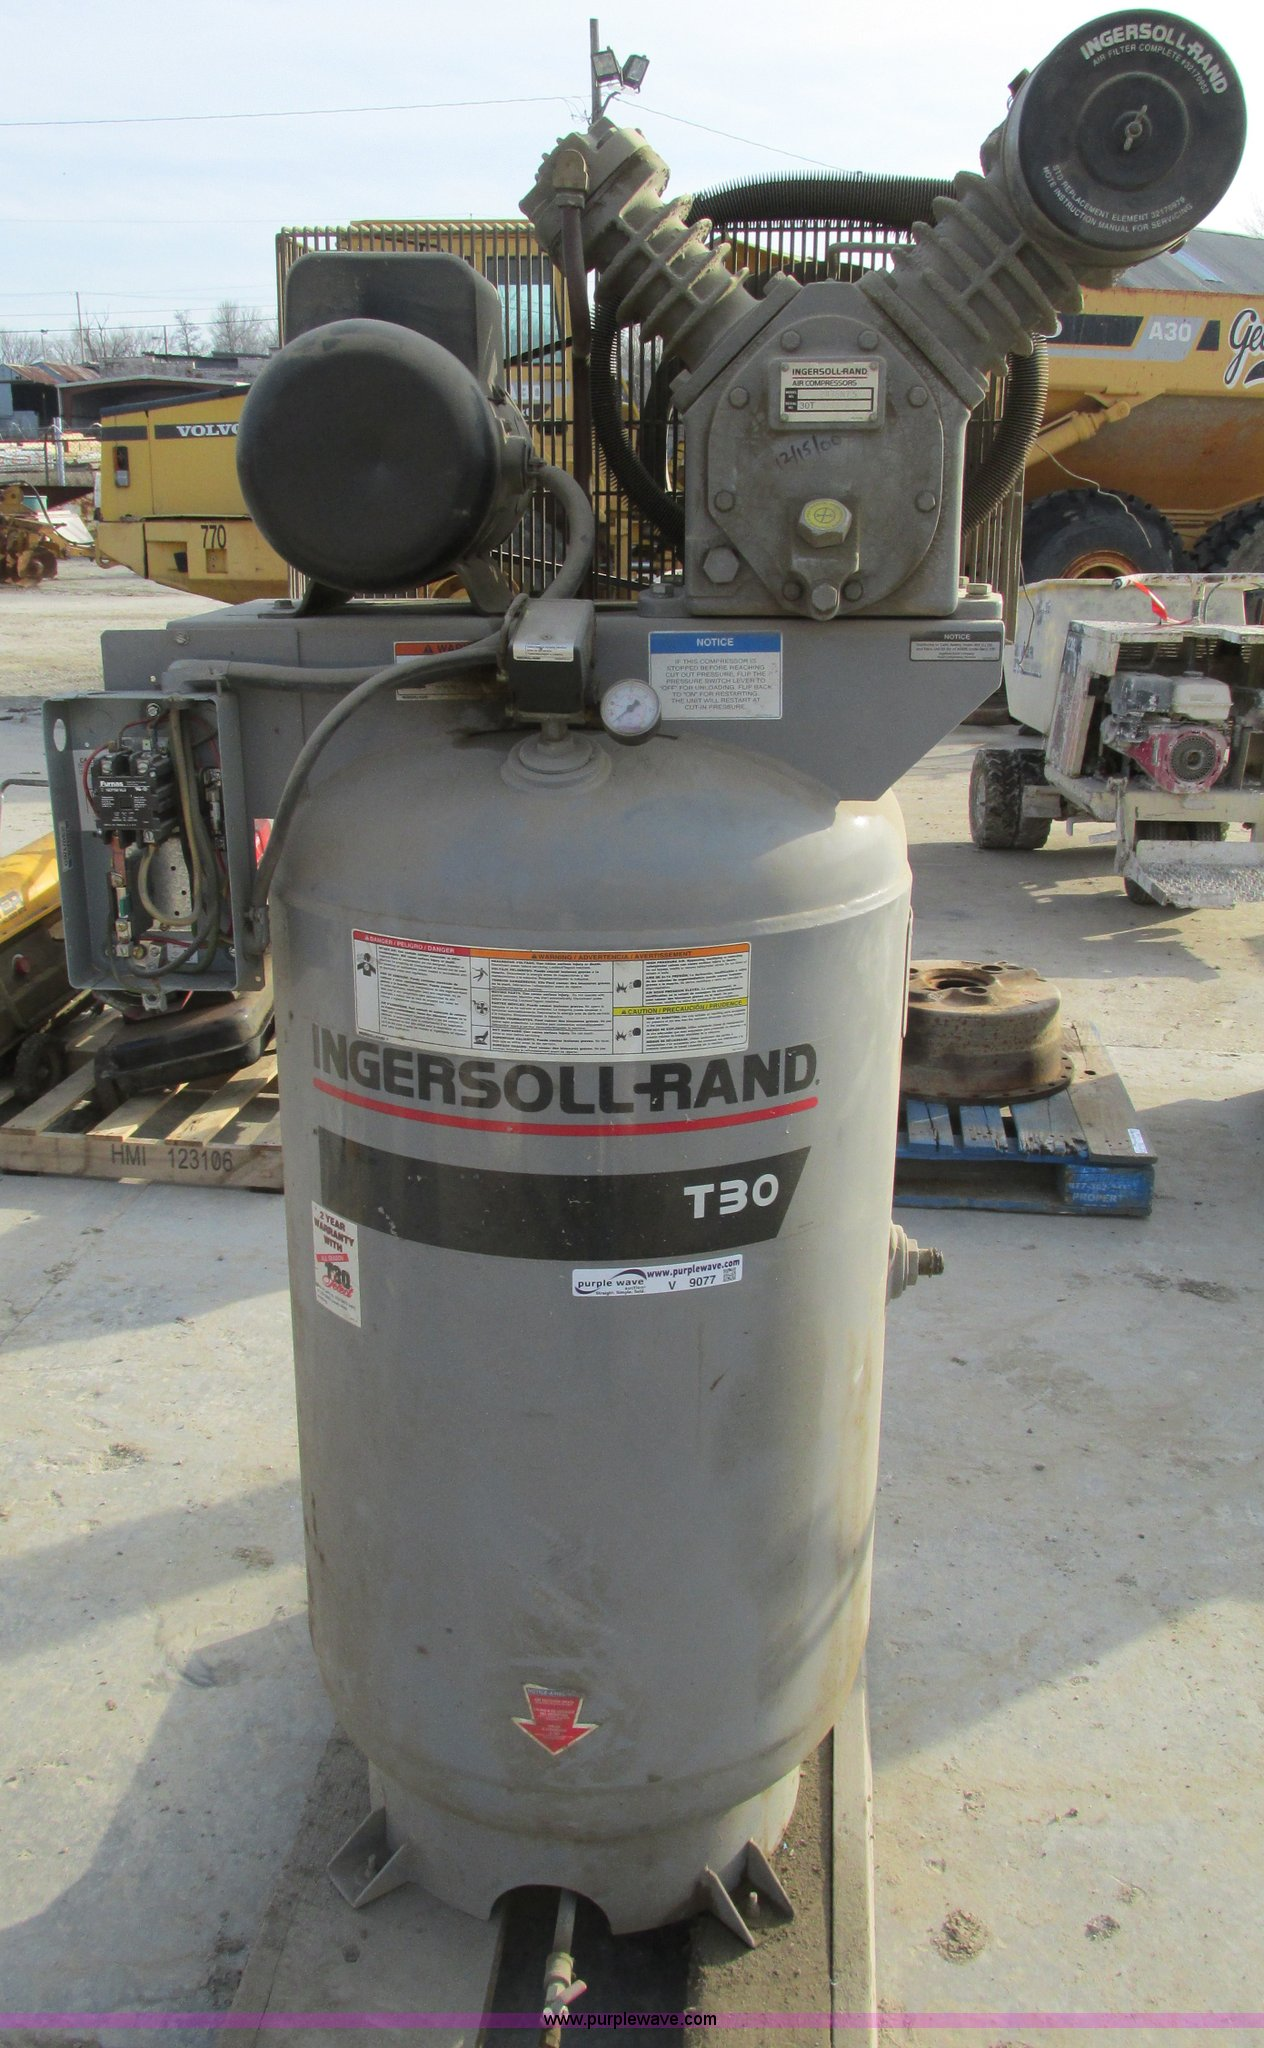 Ingersoll Rand T30 Air Compressor Item V9077 Selling At